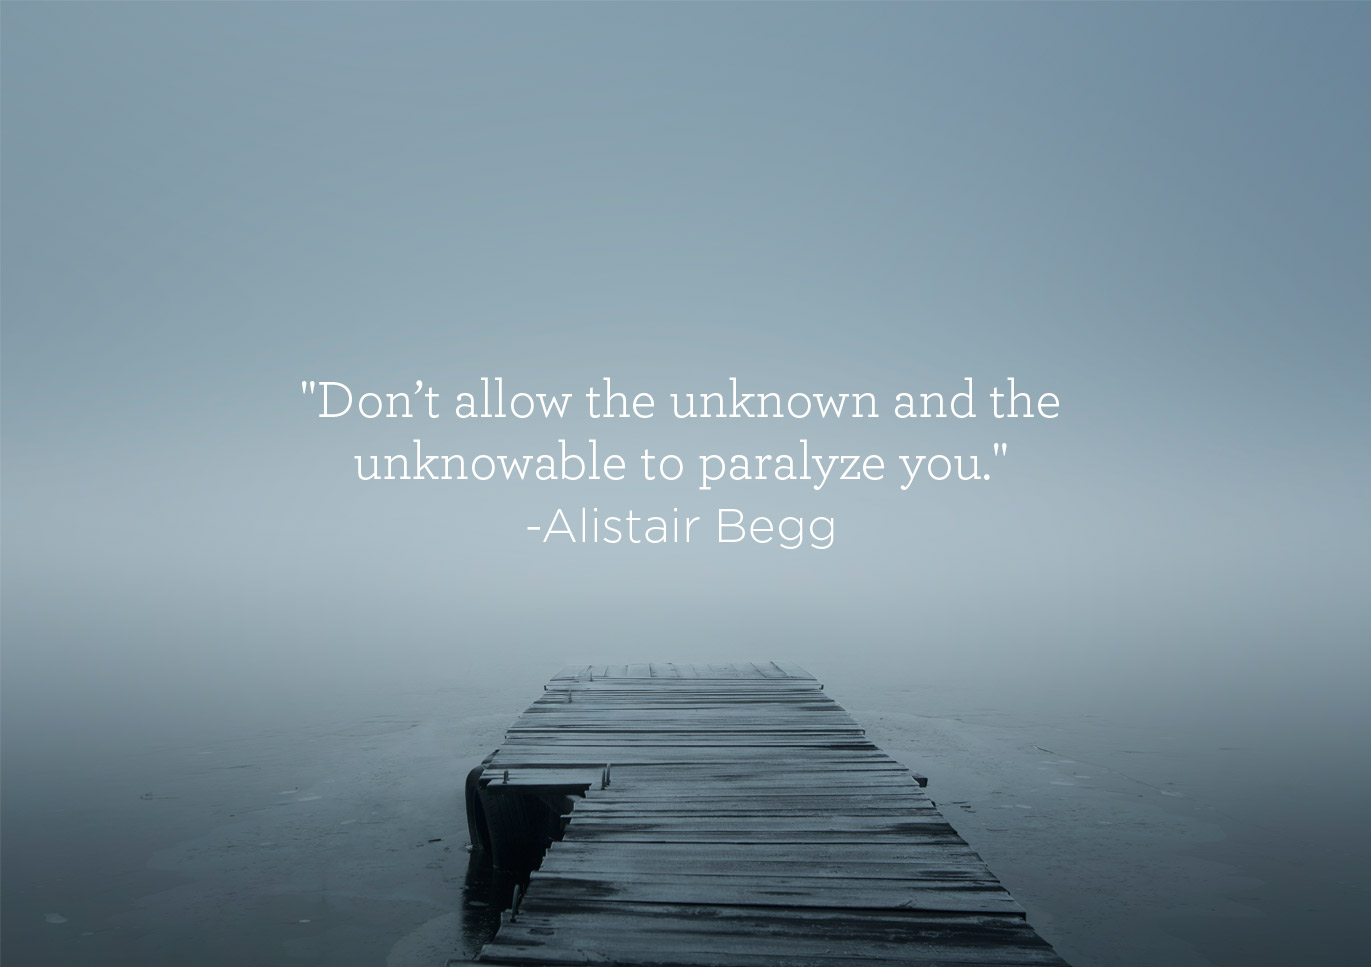 thumbnail image for The Unknown and the Unknowable